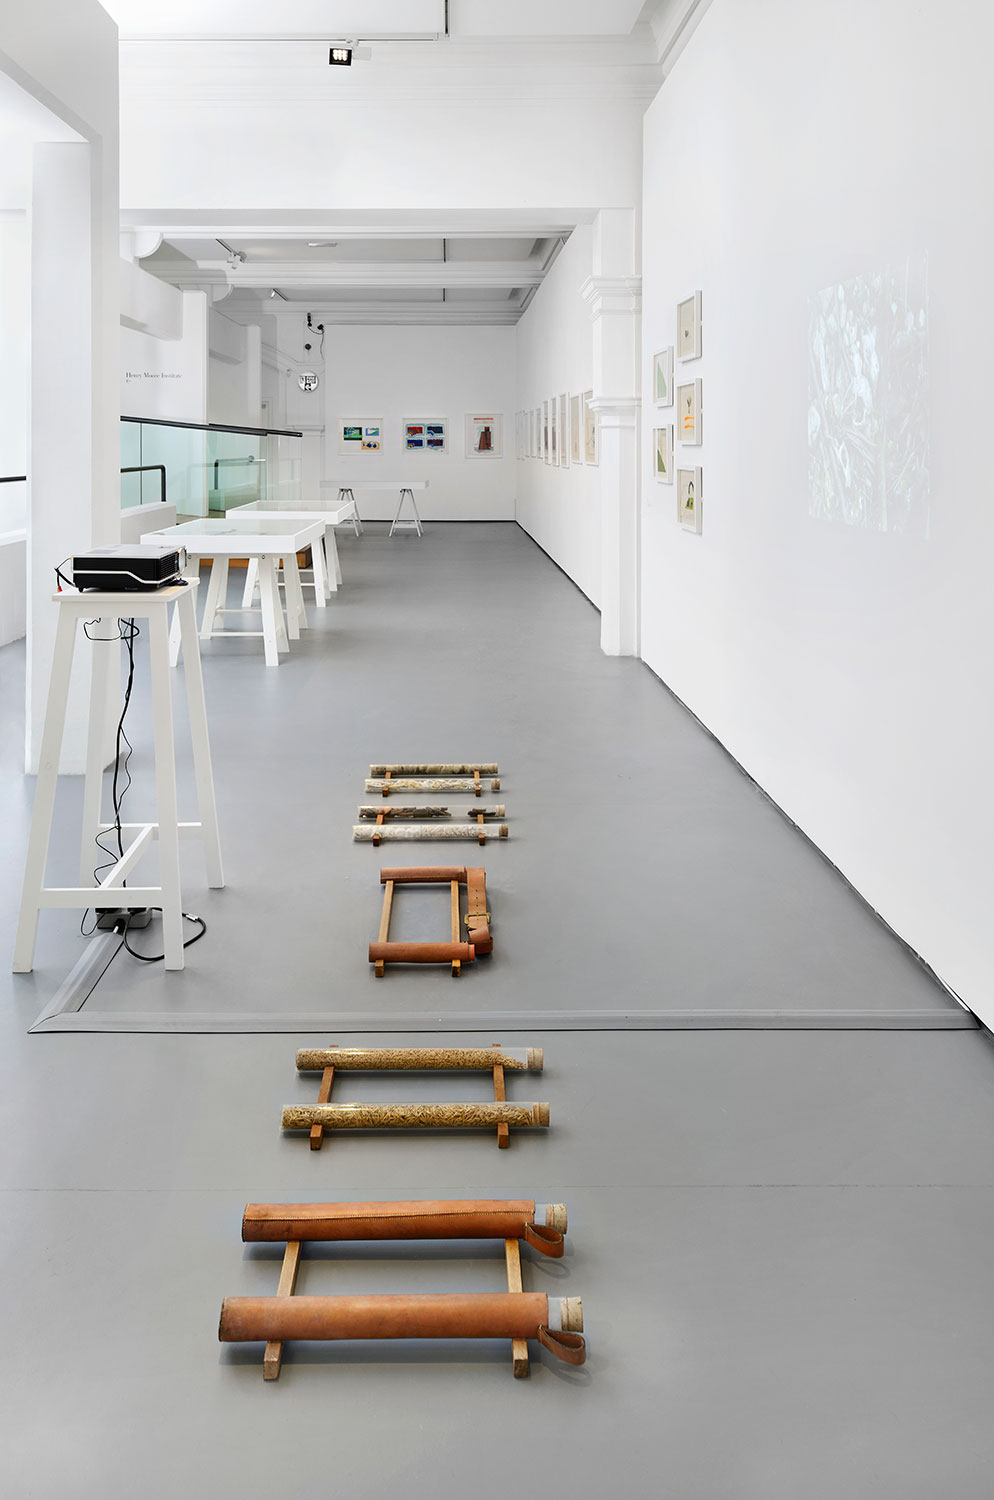 Installation view of Keir Smith: From Wall to Floor 5